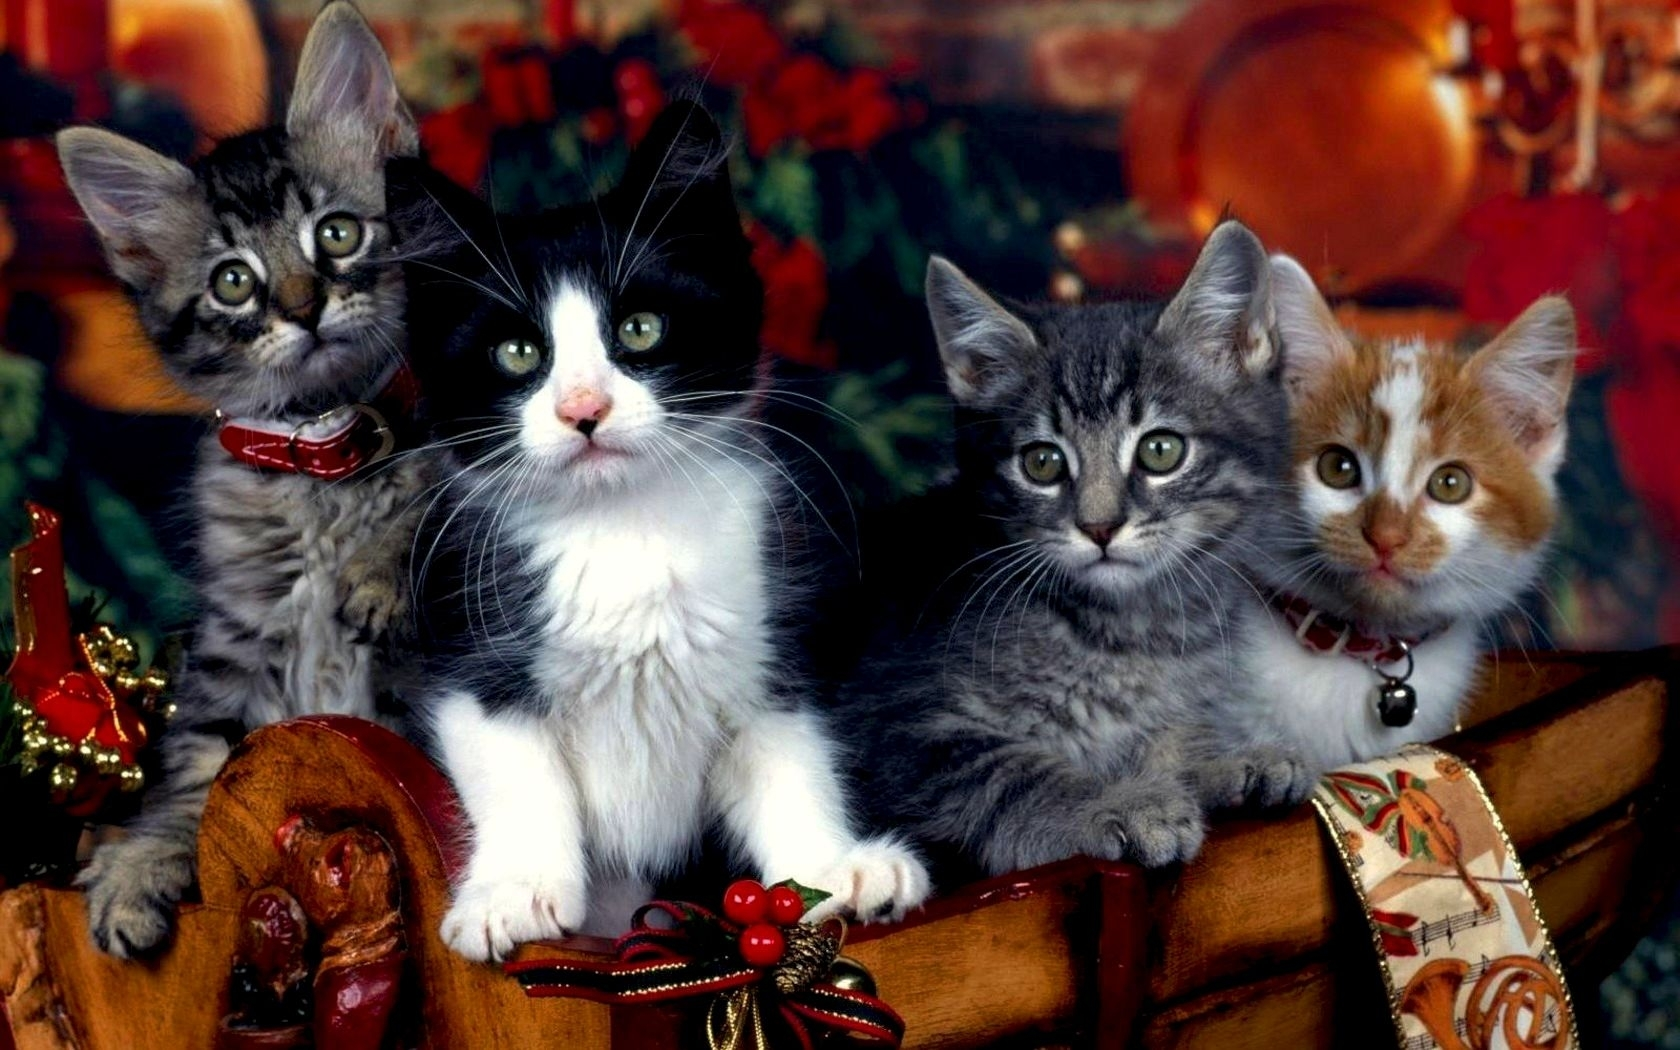 49034 download wallpaper Animals, Cats screensavers and pictures for free